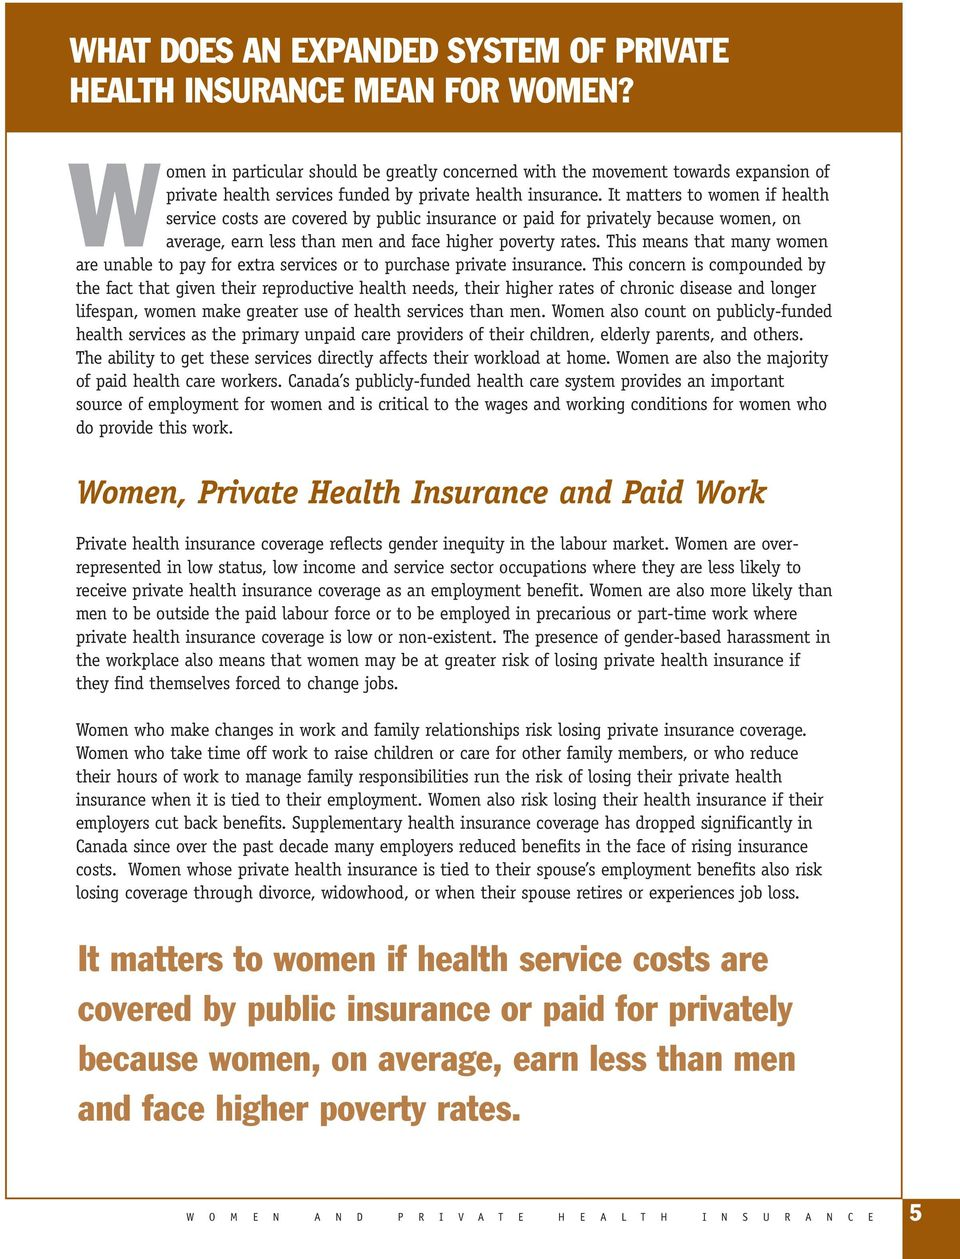 It matters to women if health service costs are covered by public insurance or paid for privately because women, on average, earn less than men and face higher poverty rates.